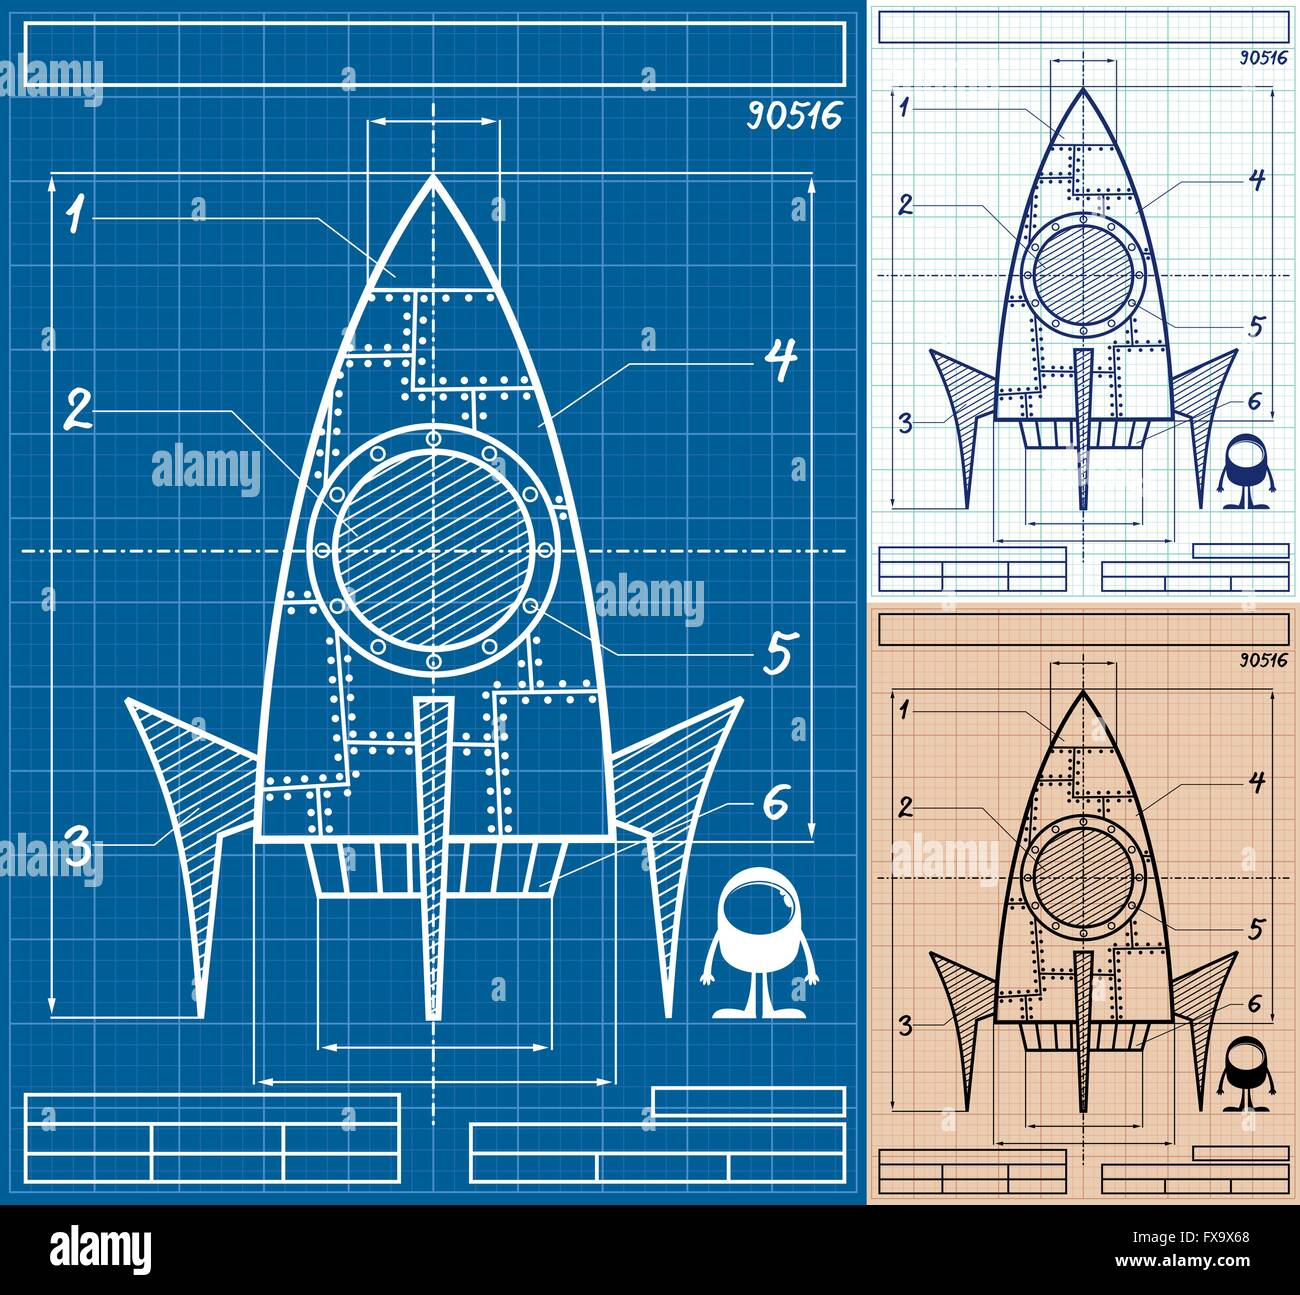 Cartoon blueprint of rocket ship in 3 versions no transparency and cartoon blueprint of rocket ship in 3 versions no transparency and gradients used malvernweather Gallery